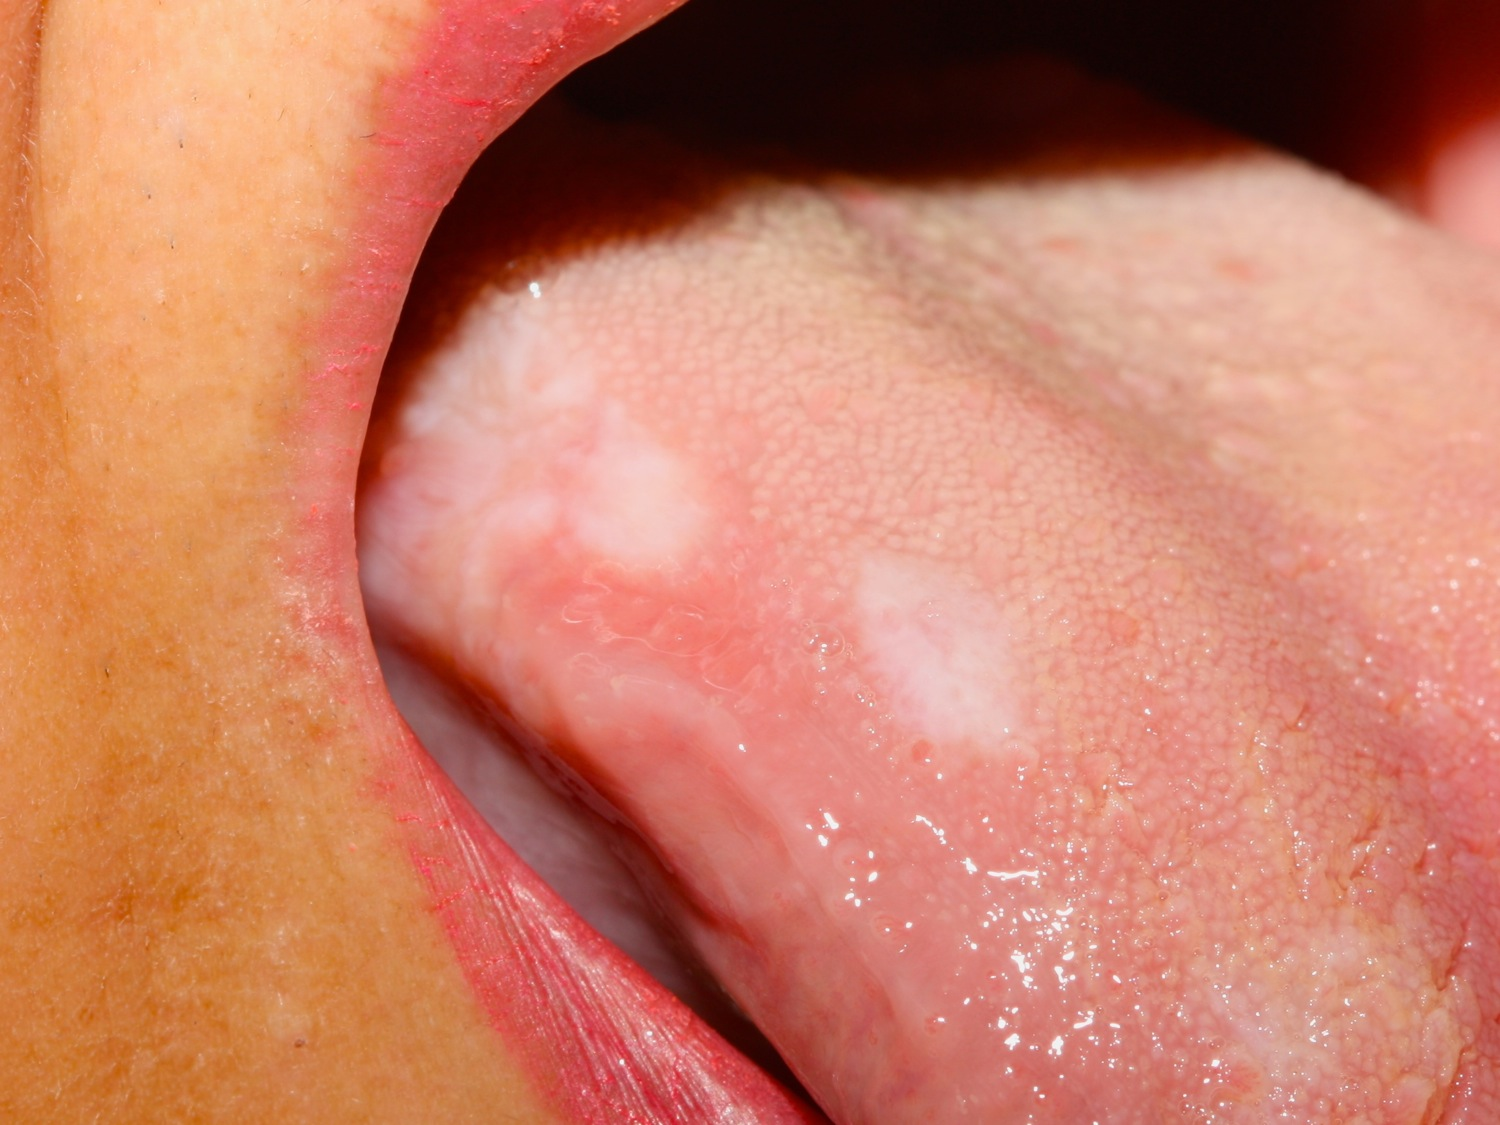 oral lichen planus tongue